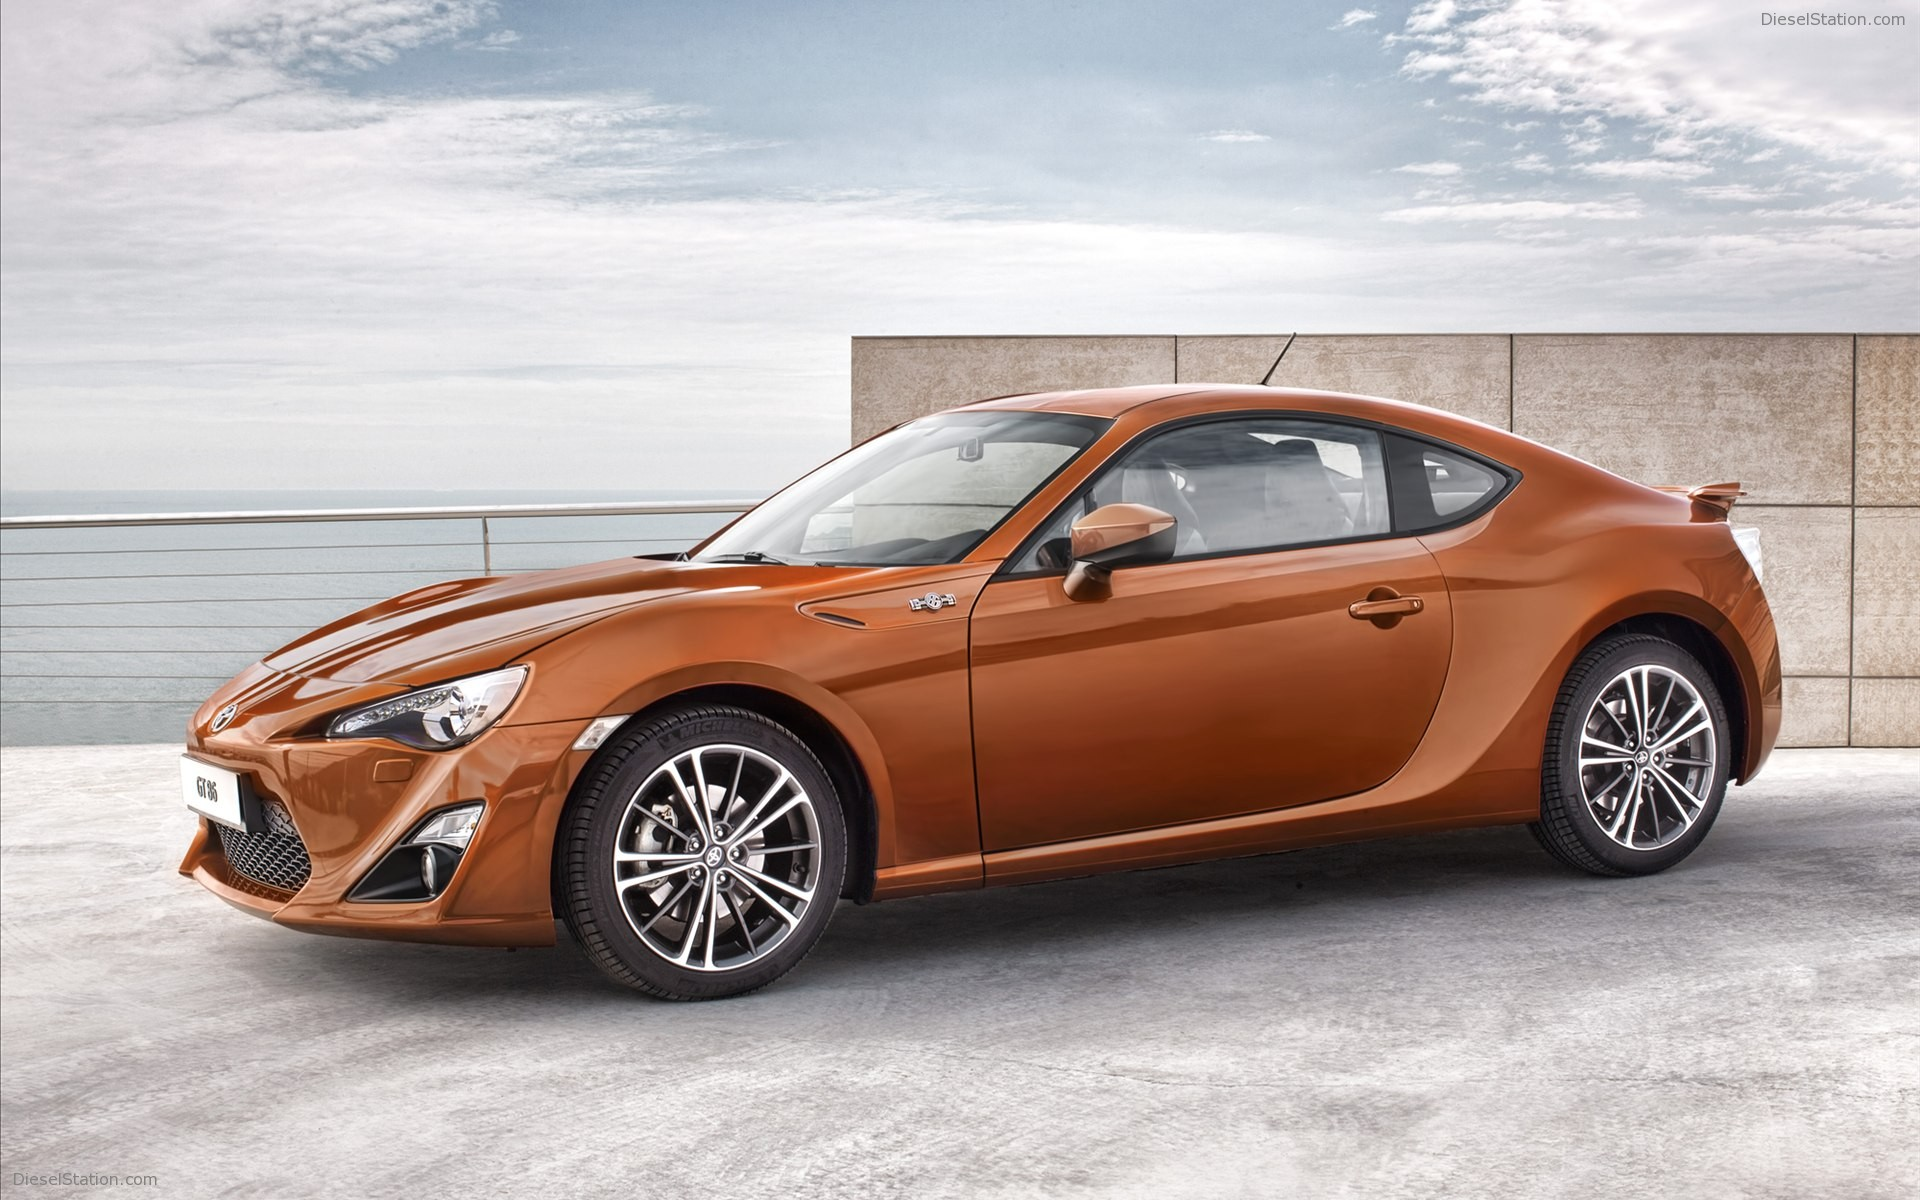 Toyota GT 86 2012 Widescreen Exotic Car Image 04 of 26 1920x1200